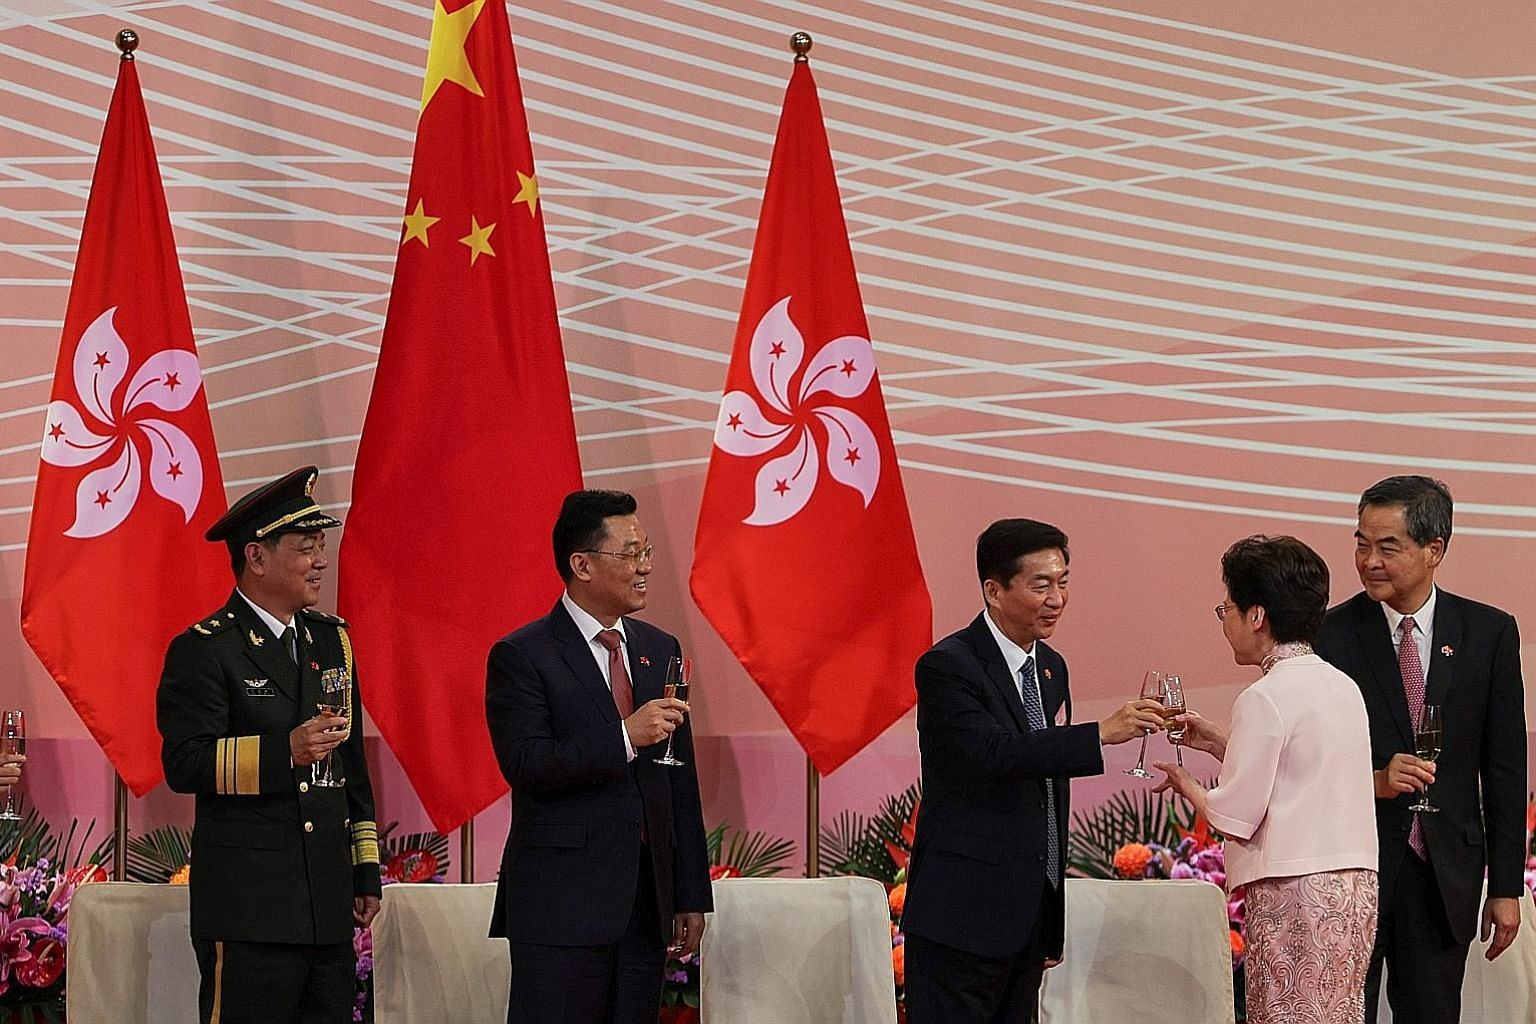 Hong Kong Chief Executive Carrie Lam and Mr Luo Huining, head of China's liaison office in the territory, clinking glasses at a ceremony to mark the city's handover anniversary last Wednesday. PHOTO: REUTERS